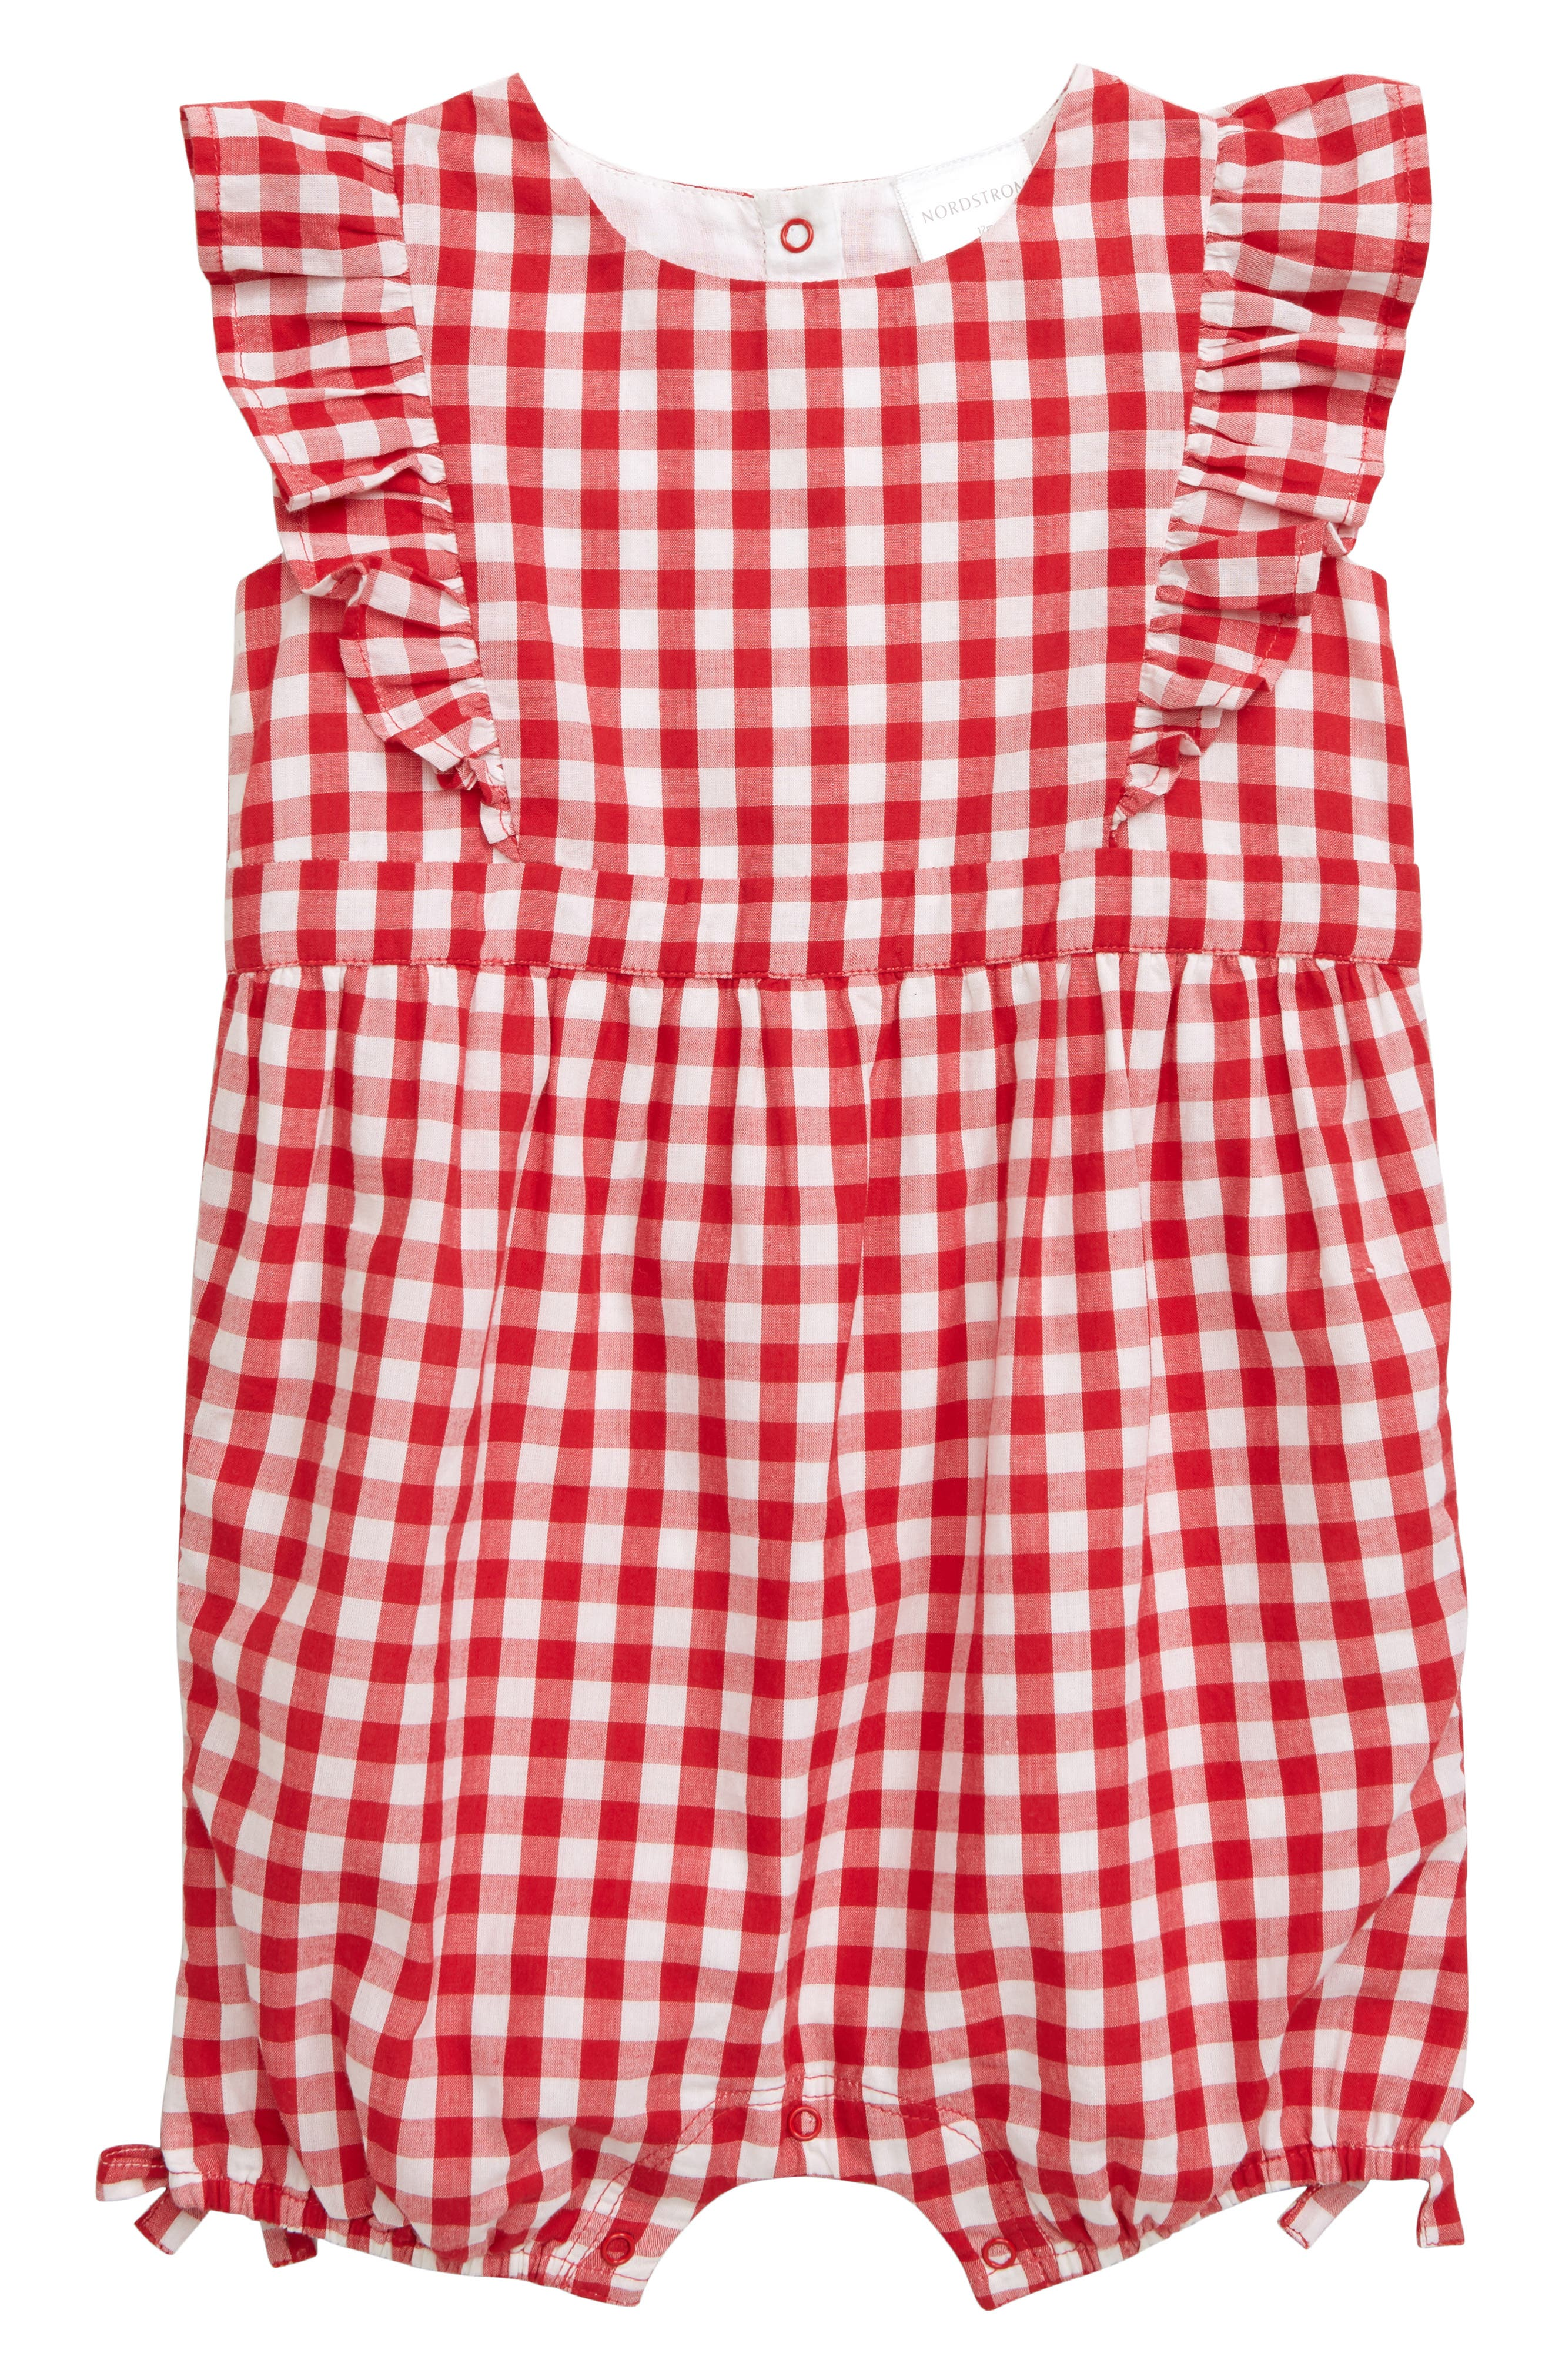 Delicious Infant Red Ice Cream Hot Red Jumpsuit Black Red Plaid Baby Girl Dress Nb-12month Comfortable And Easy To Wear One-pieces Clothing, Shoes & Accessories